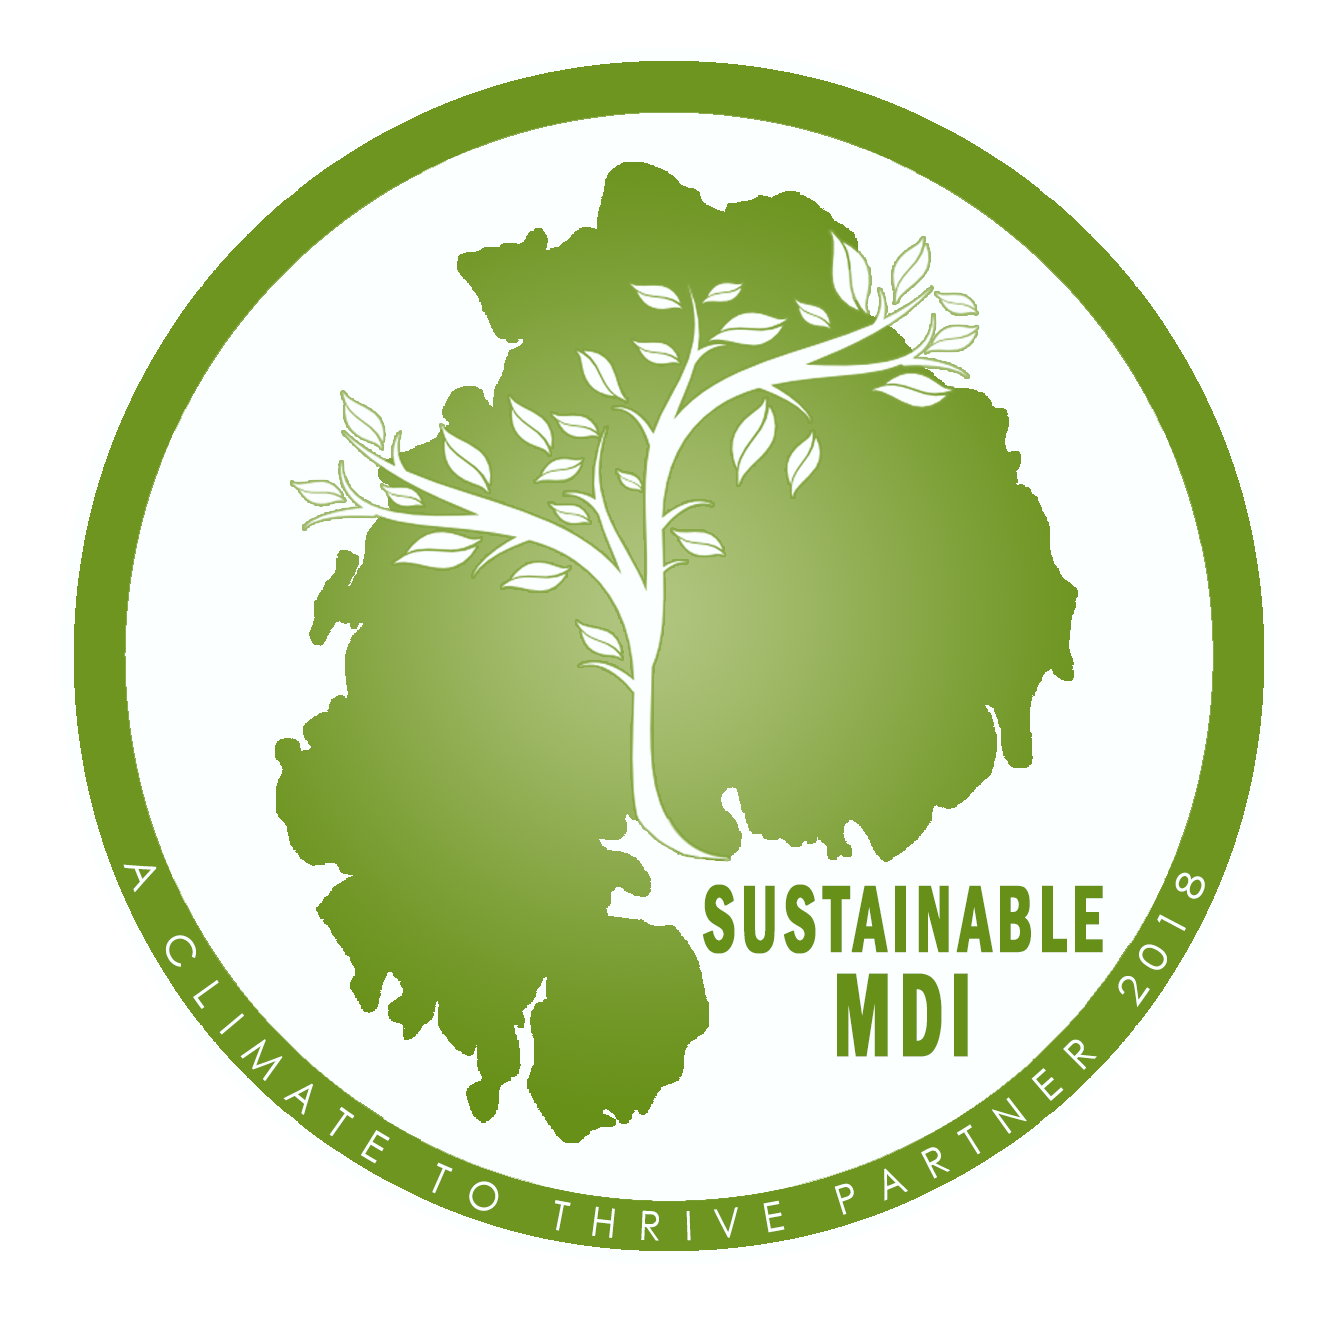 SMDI sticker one.png